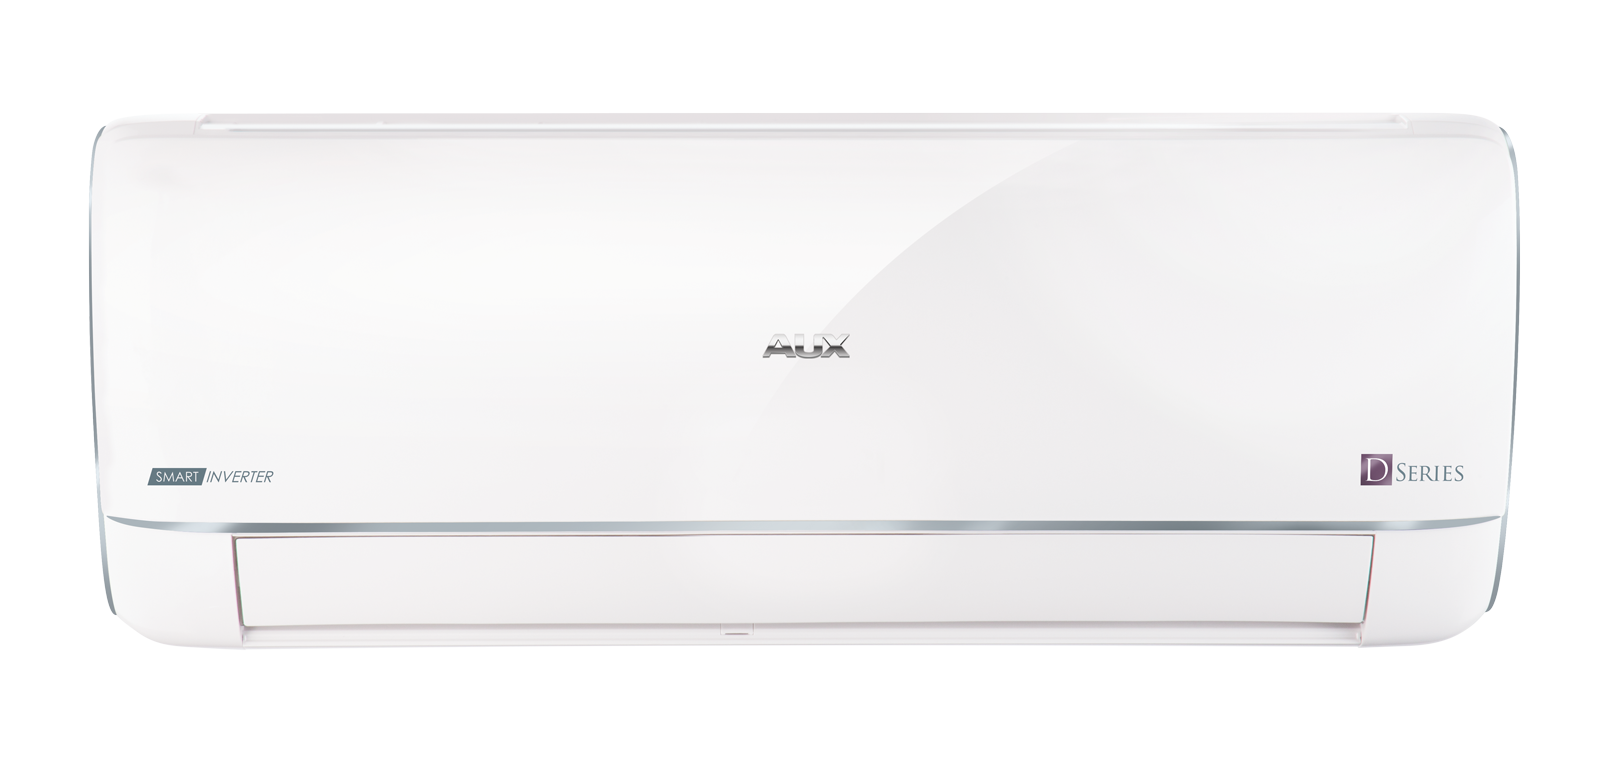 AUX Series D Smart Inverter